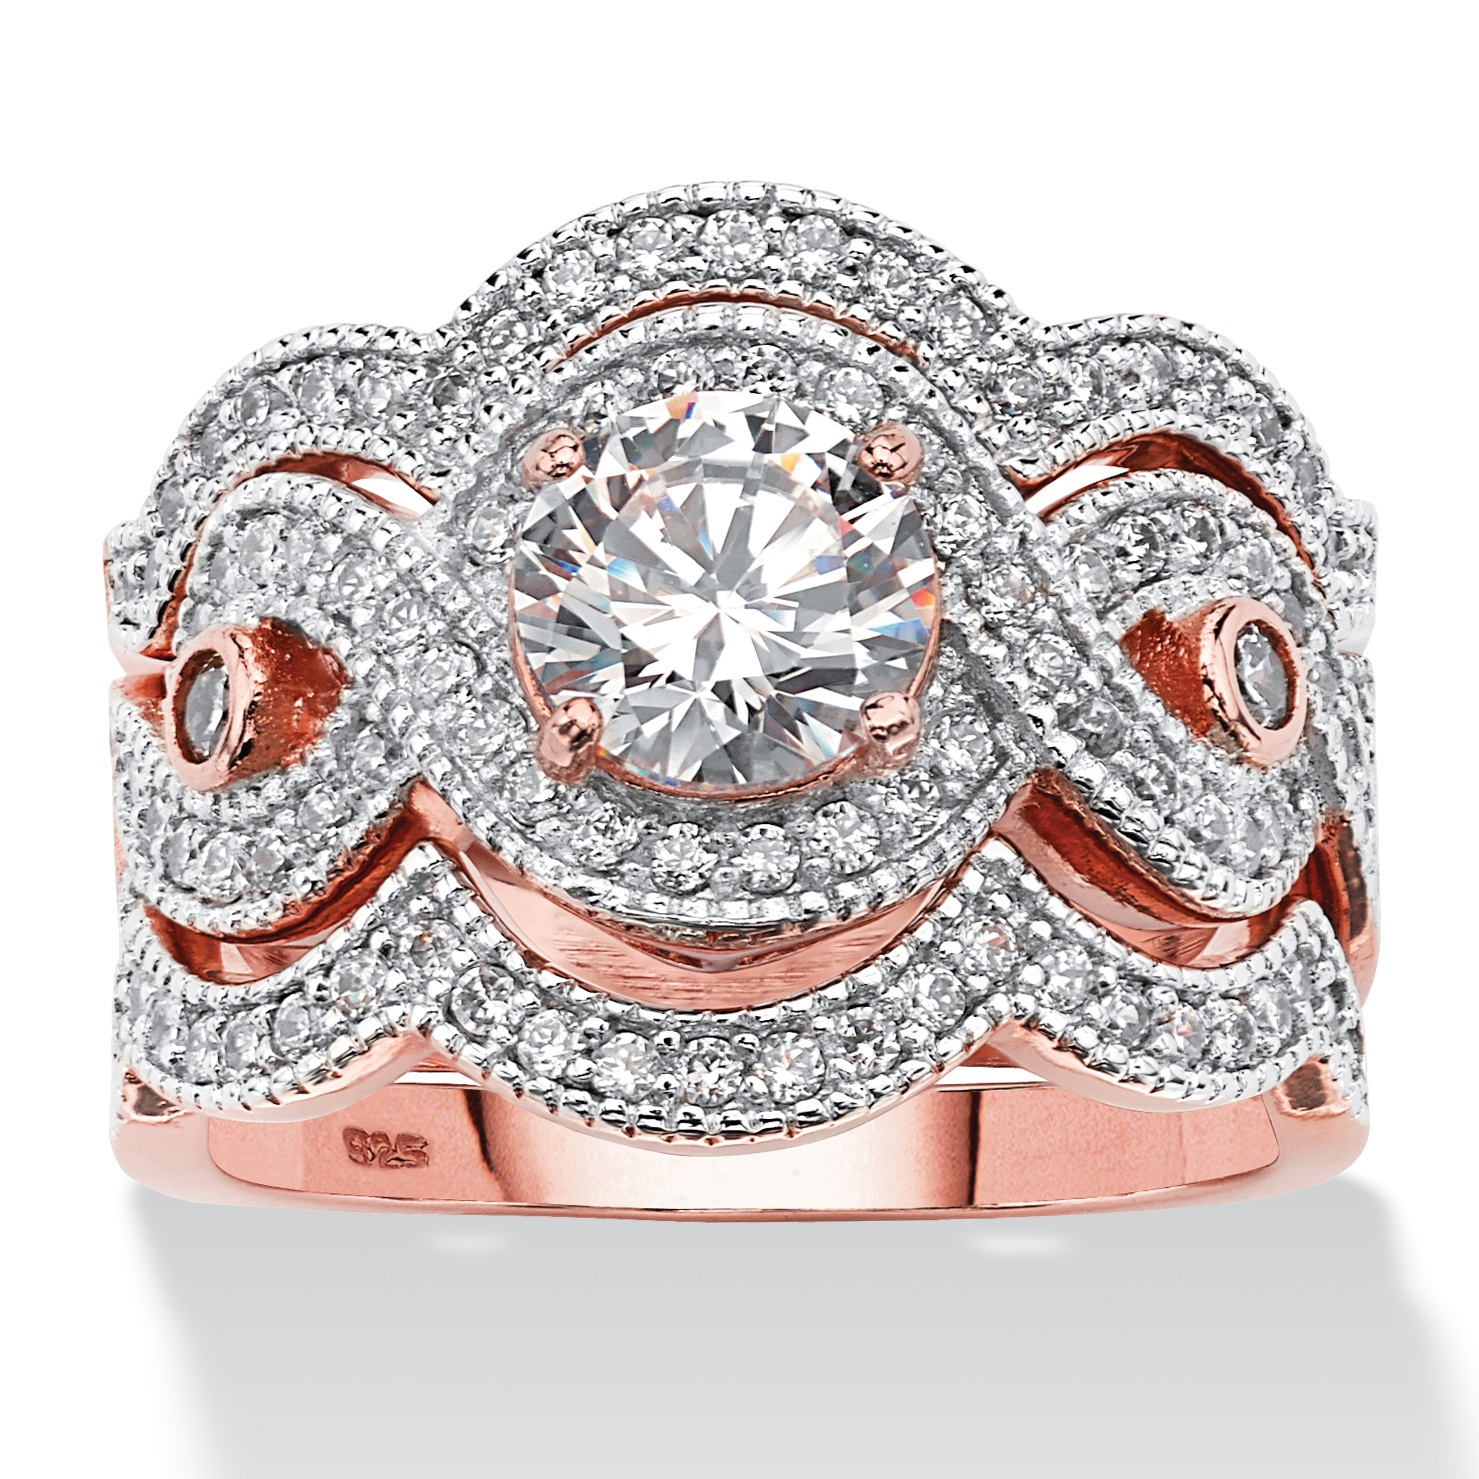 237 TCW Round Cubic Zirconia Bridal Ring Set in Rose Gold over